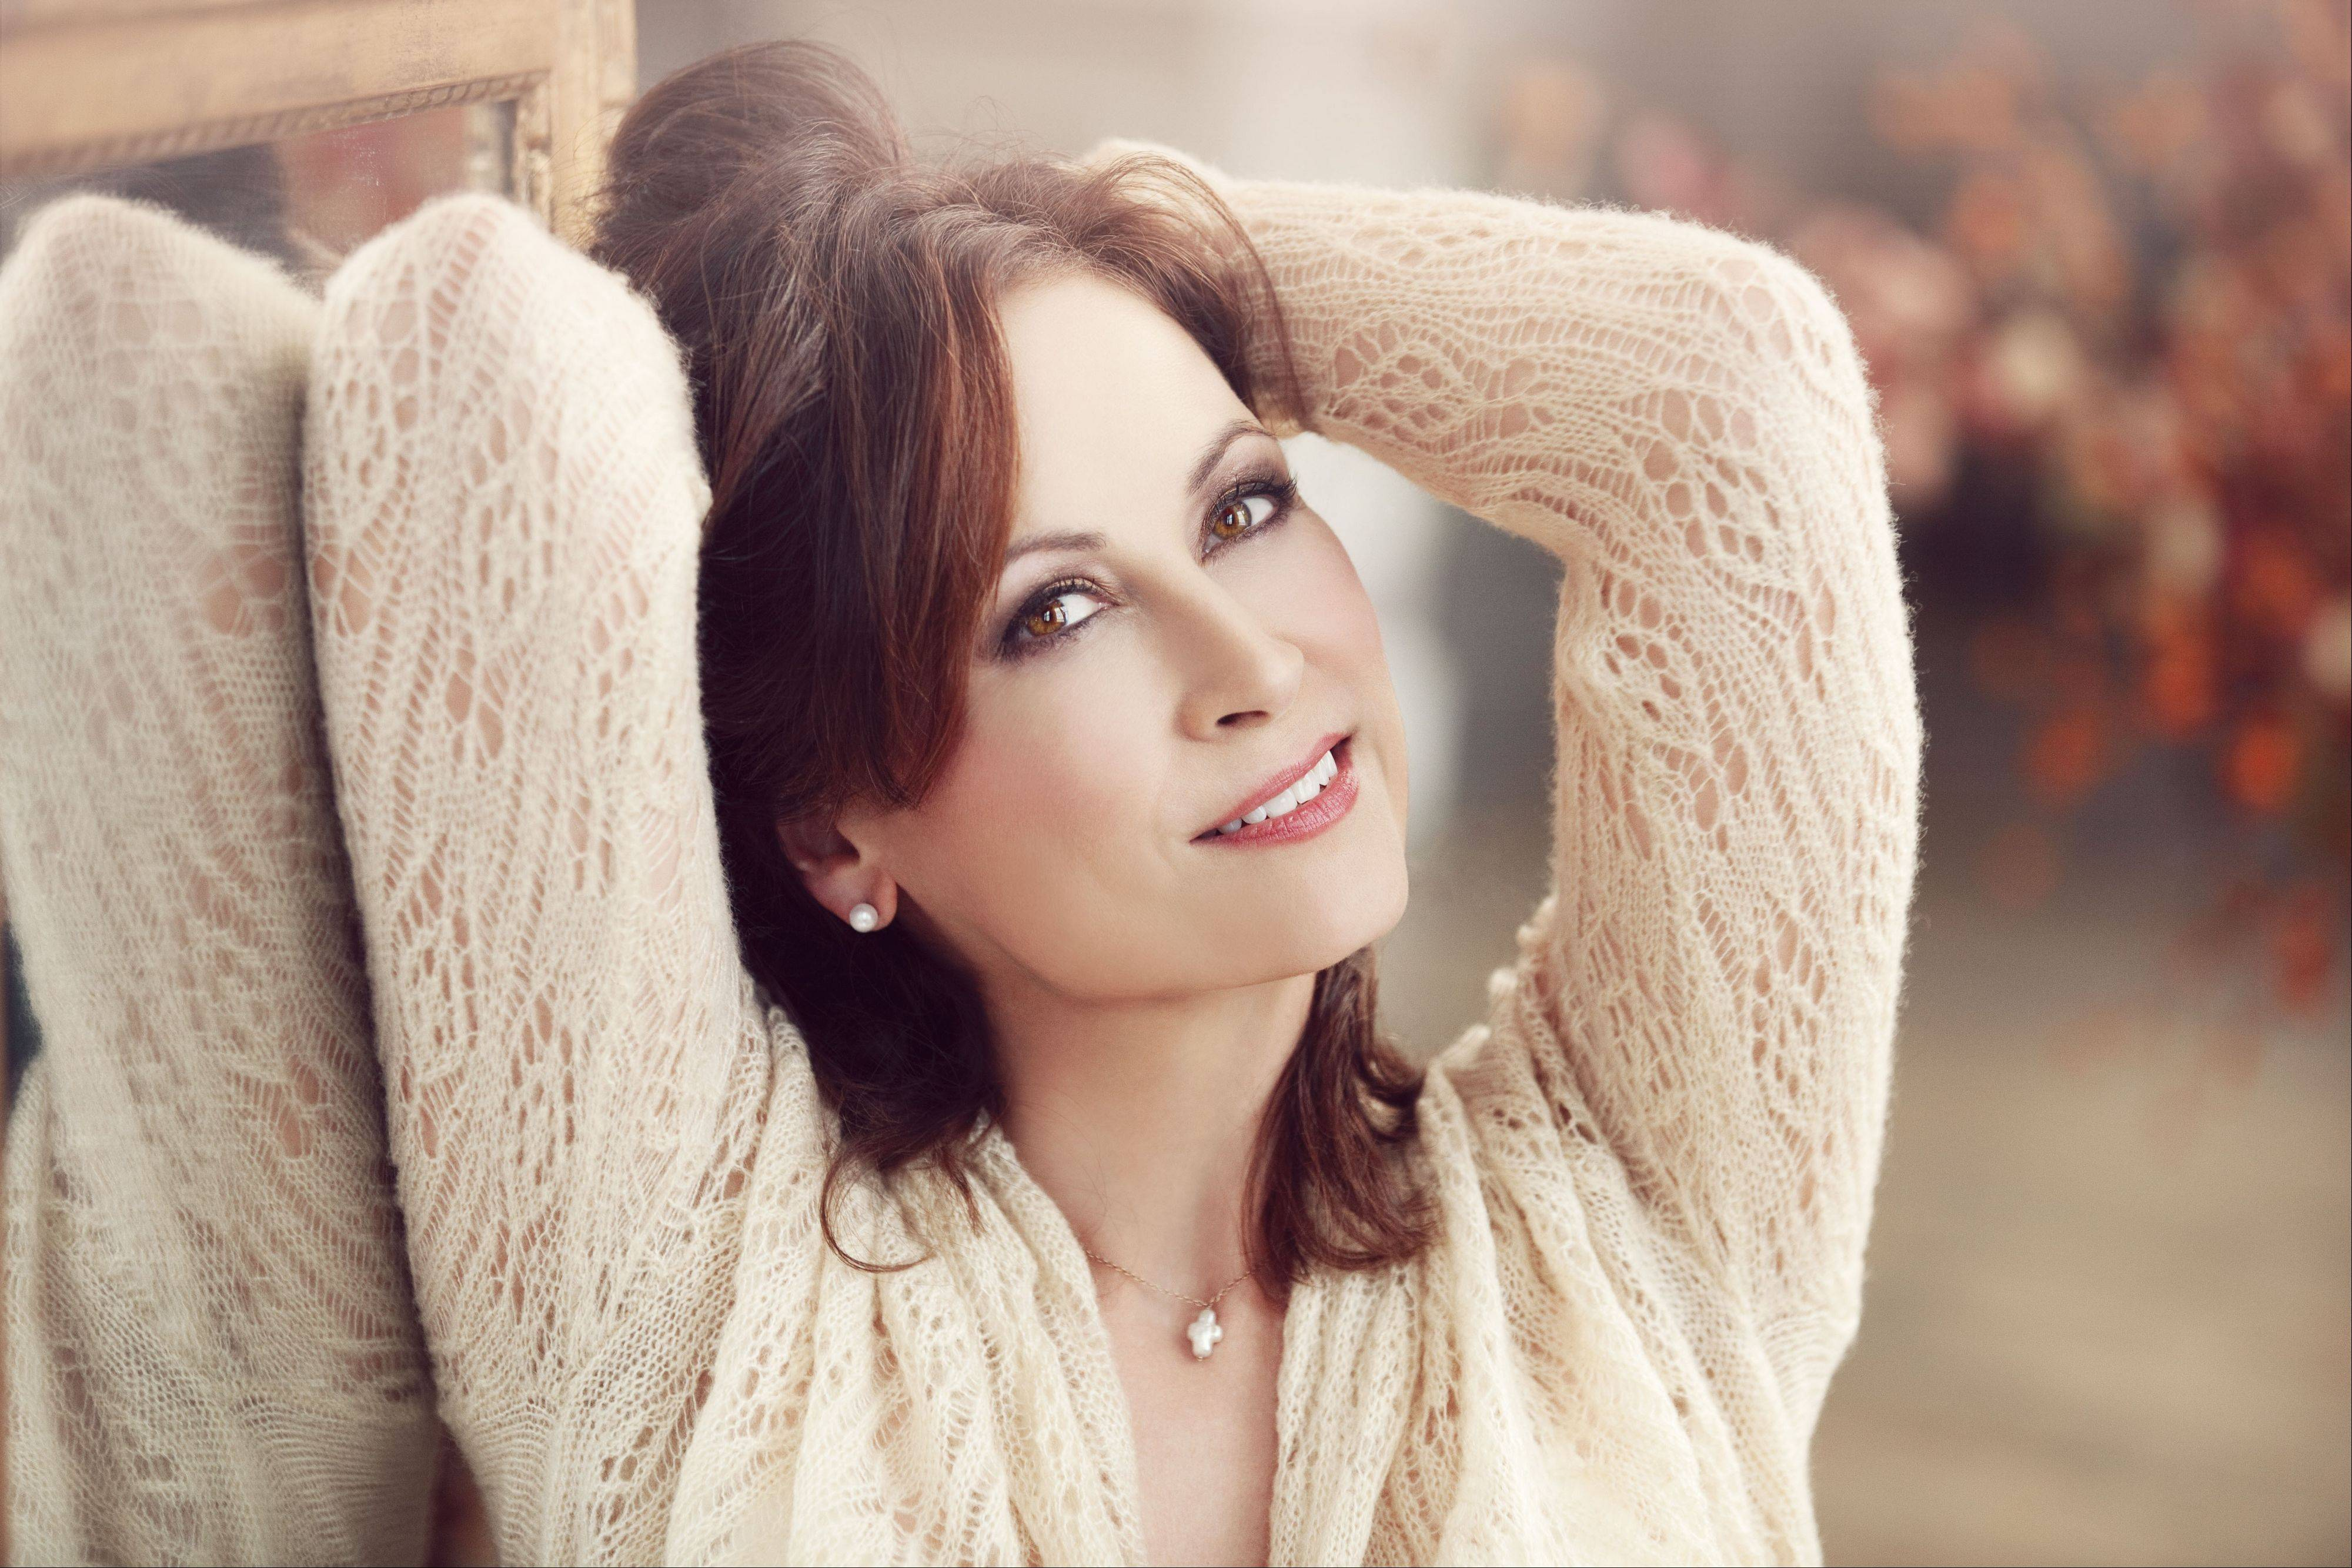 Linda Eder will perform at Viper's Alley in Lincolnshire.